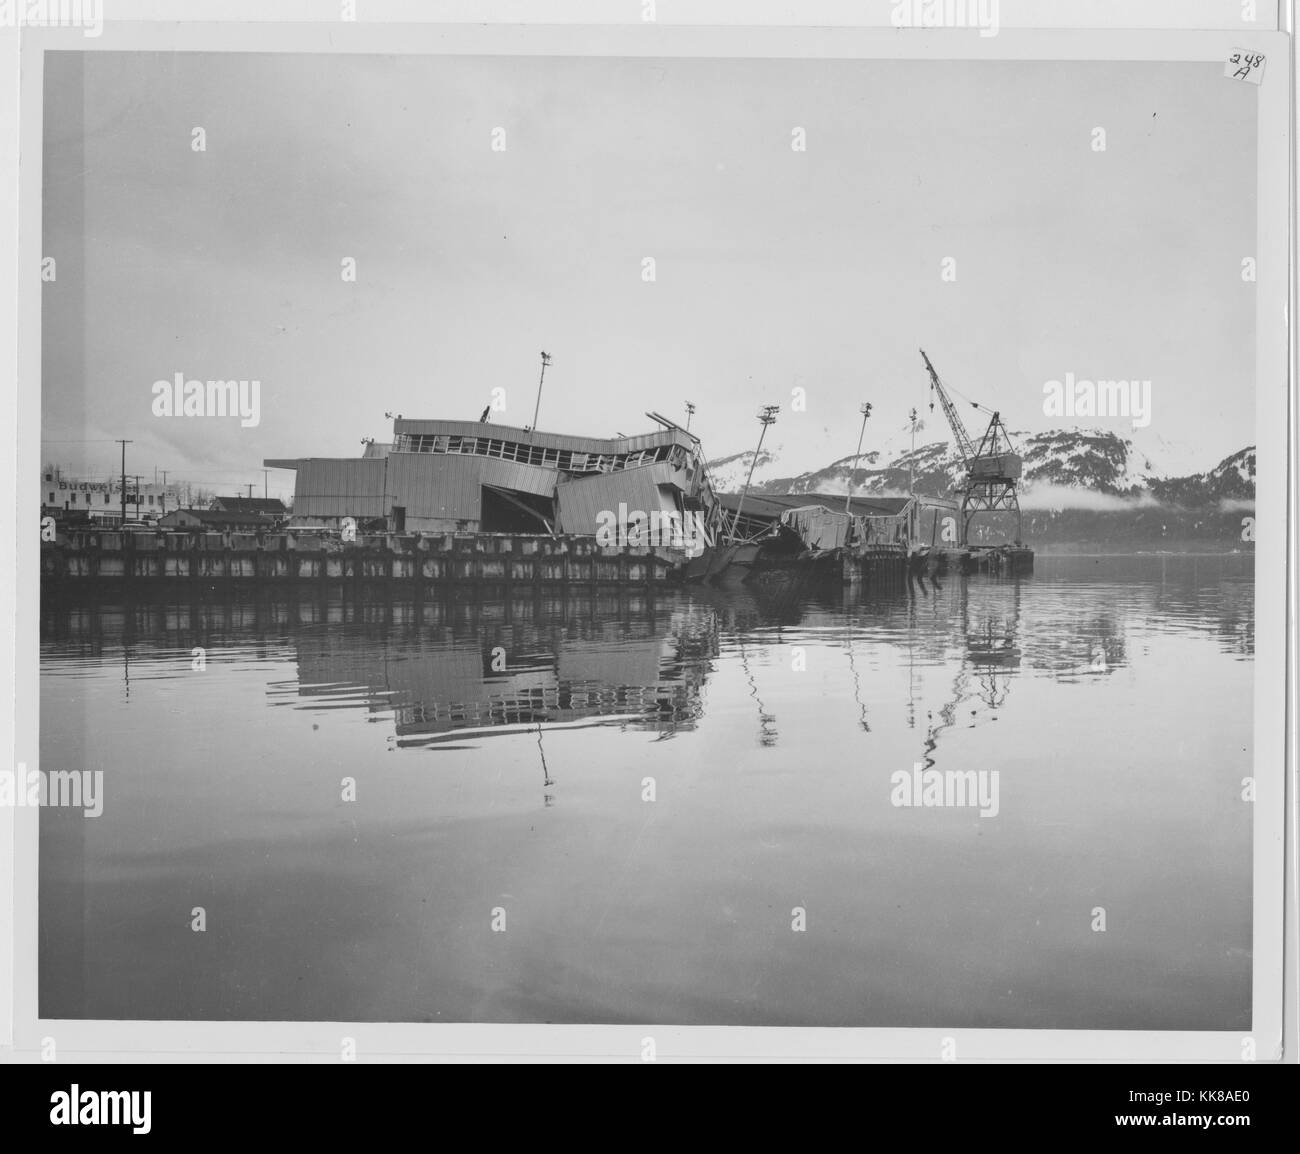 A photograph showing the damage that occurred to the dock in Seward due to the effects of the 1964 Alaska Earthquake, - Stock Image